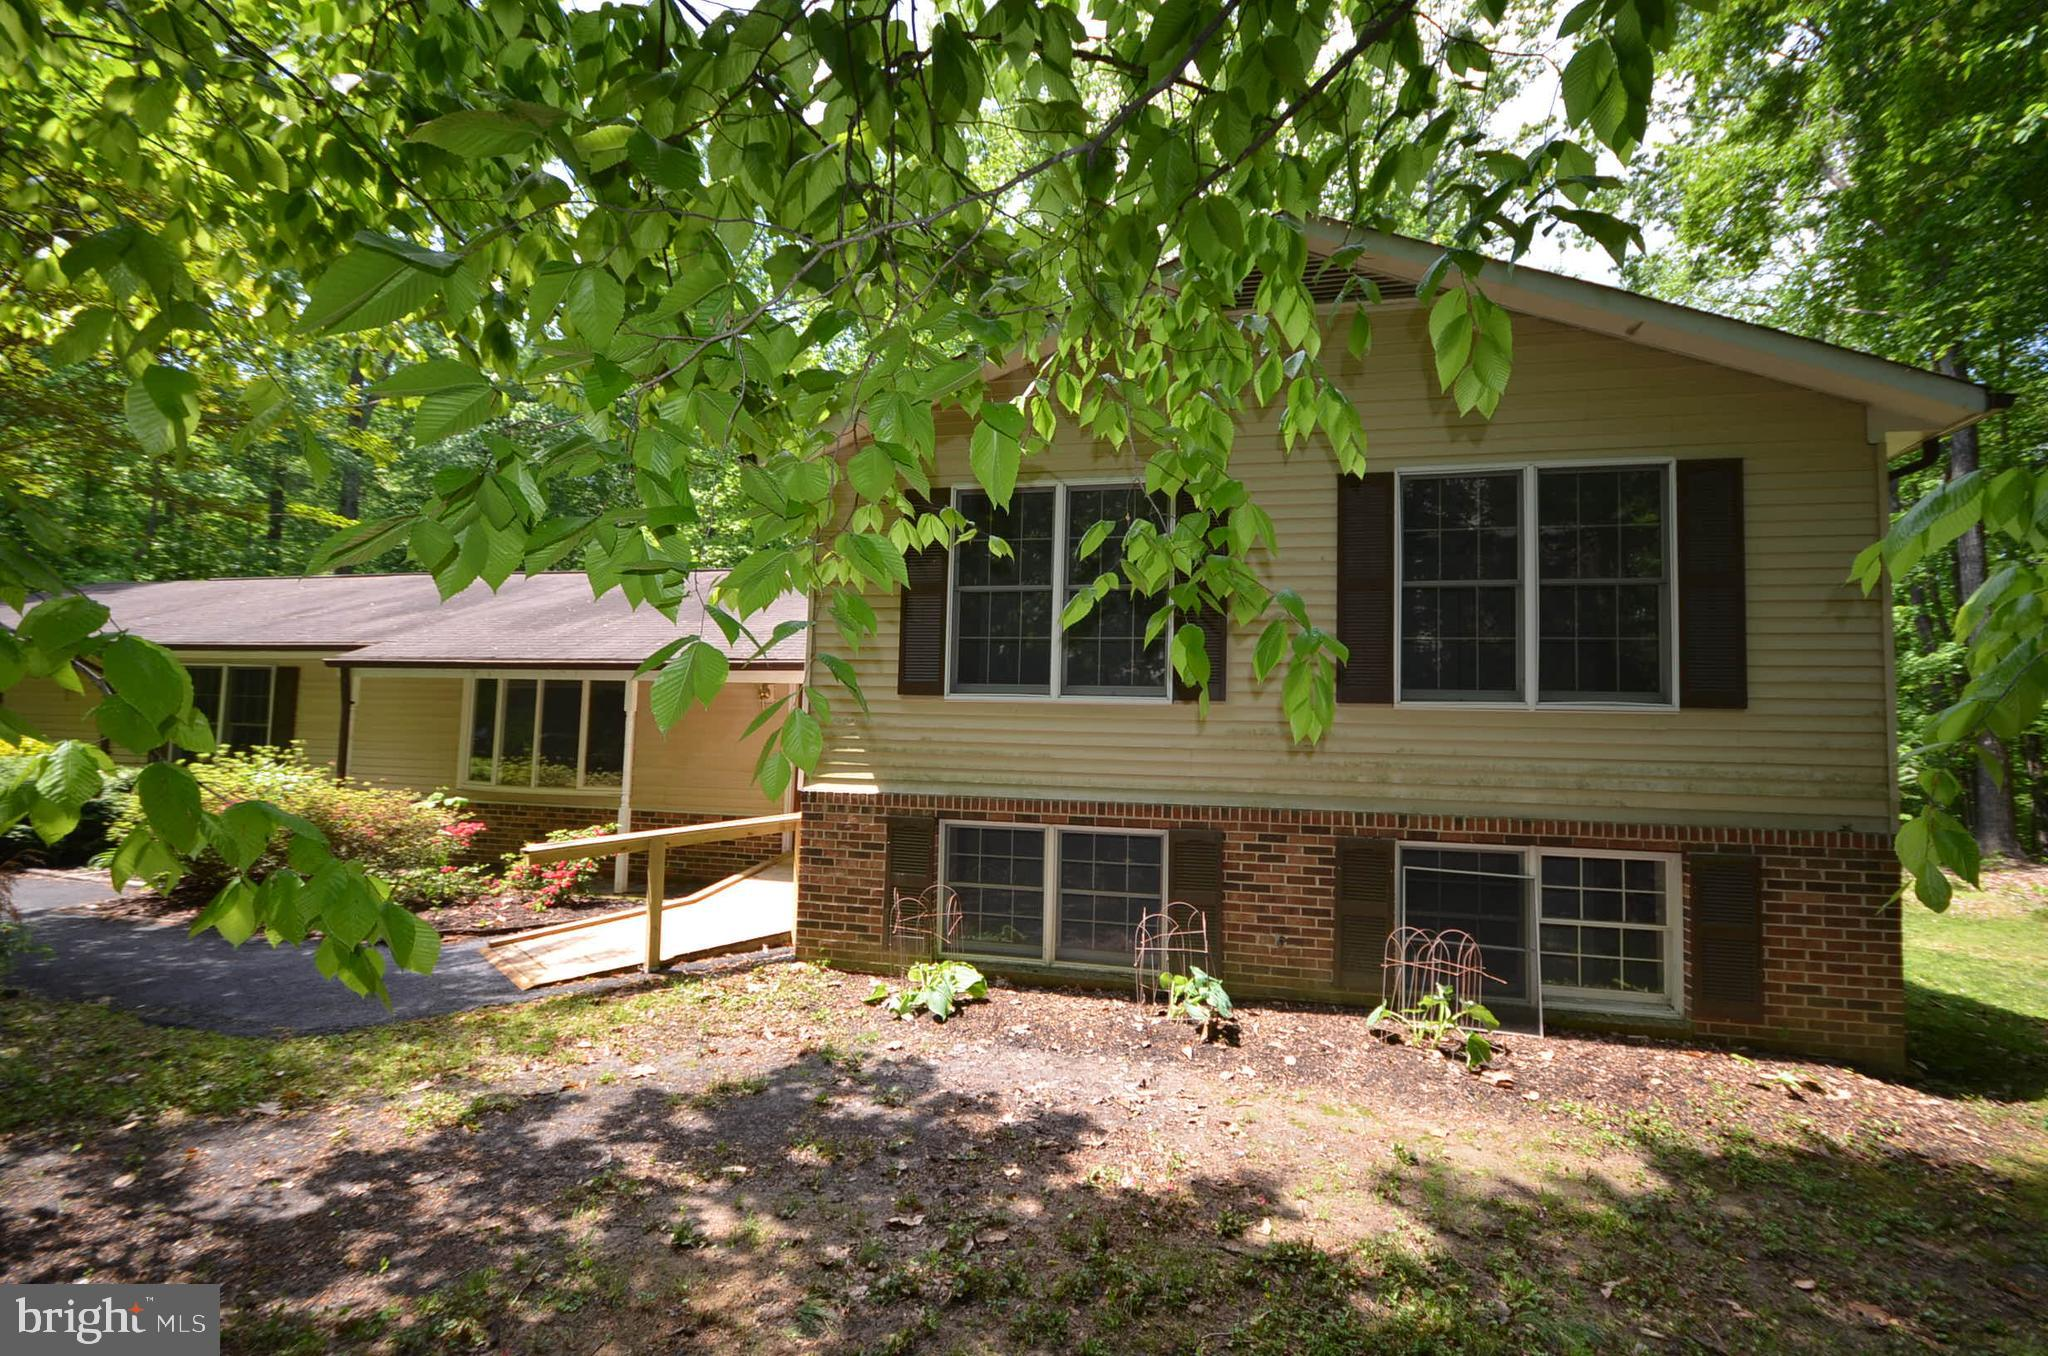 Single family 5 bedroom, 3.5 bath home that contains 2,099 sq ft and was built in 1984. New carpet and paint throughout. Private, wooded yard with large back deck and screened back porch. Updated kitchen with stainless steel appliances.